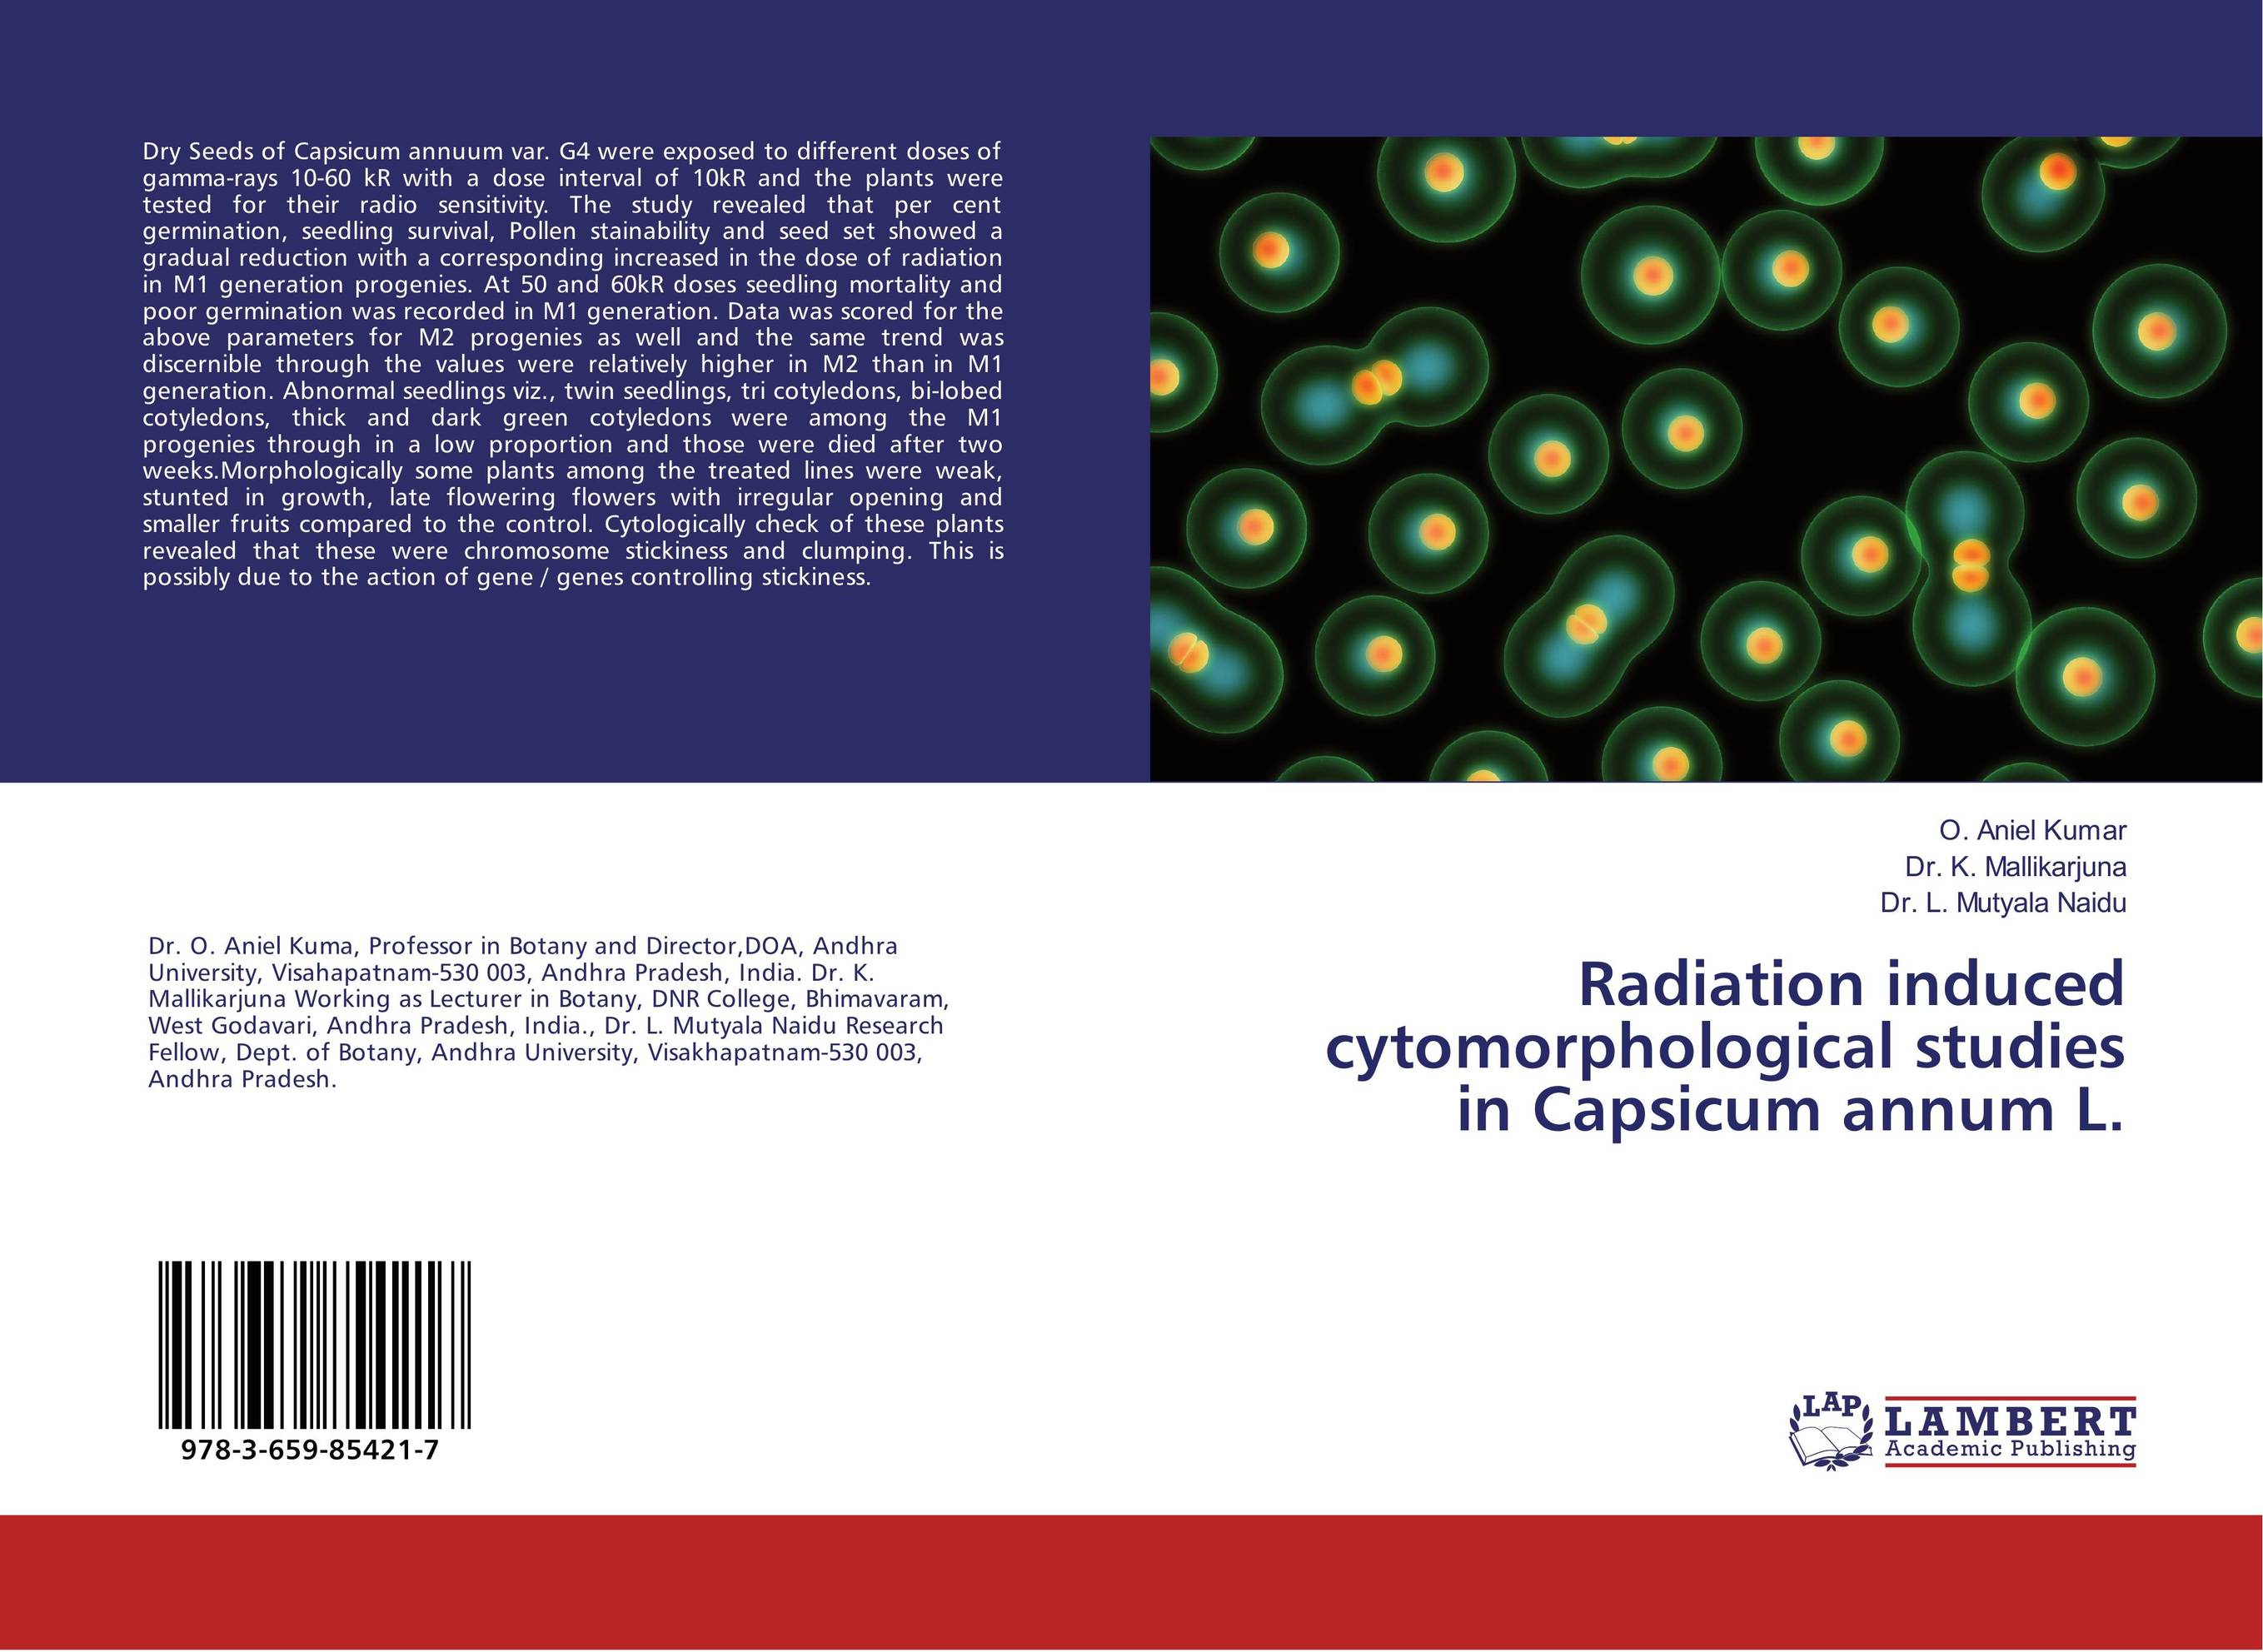 Radiation induced cytomorphological studies in Capsicum annum L. spring in the garden flowers and seedlings